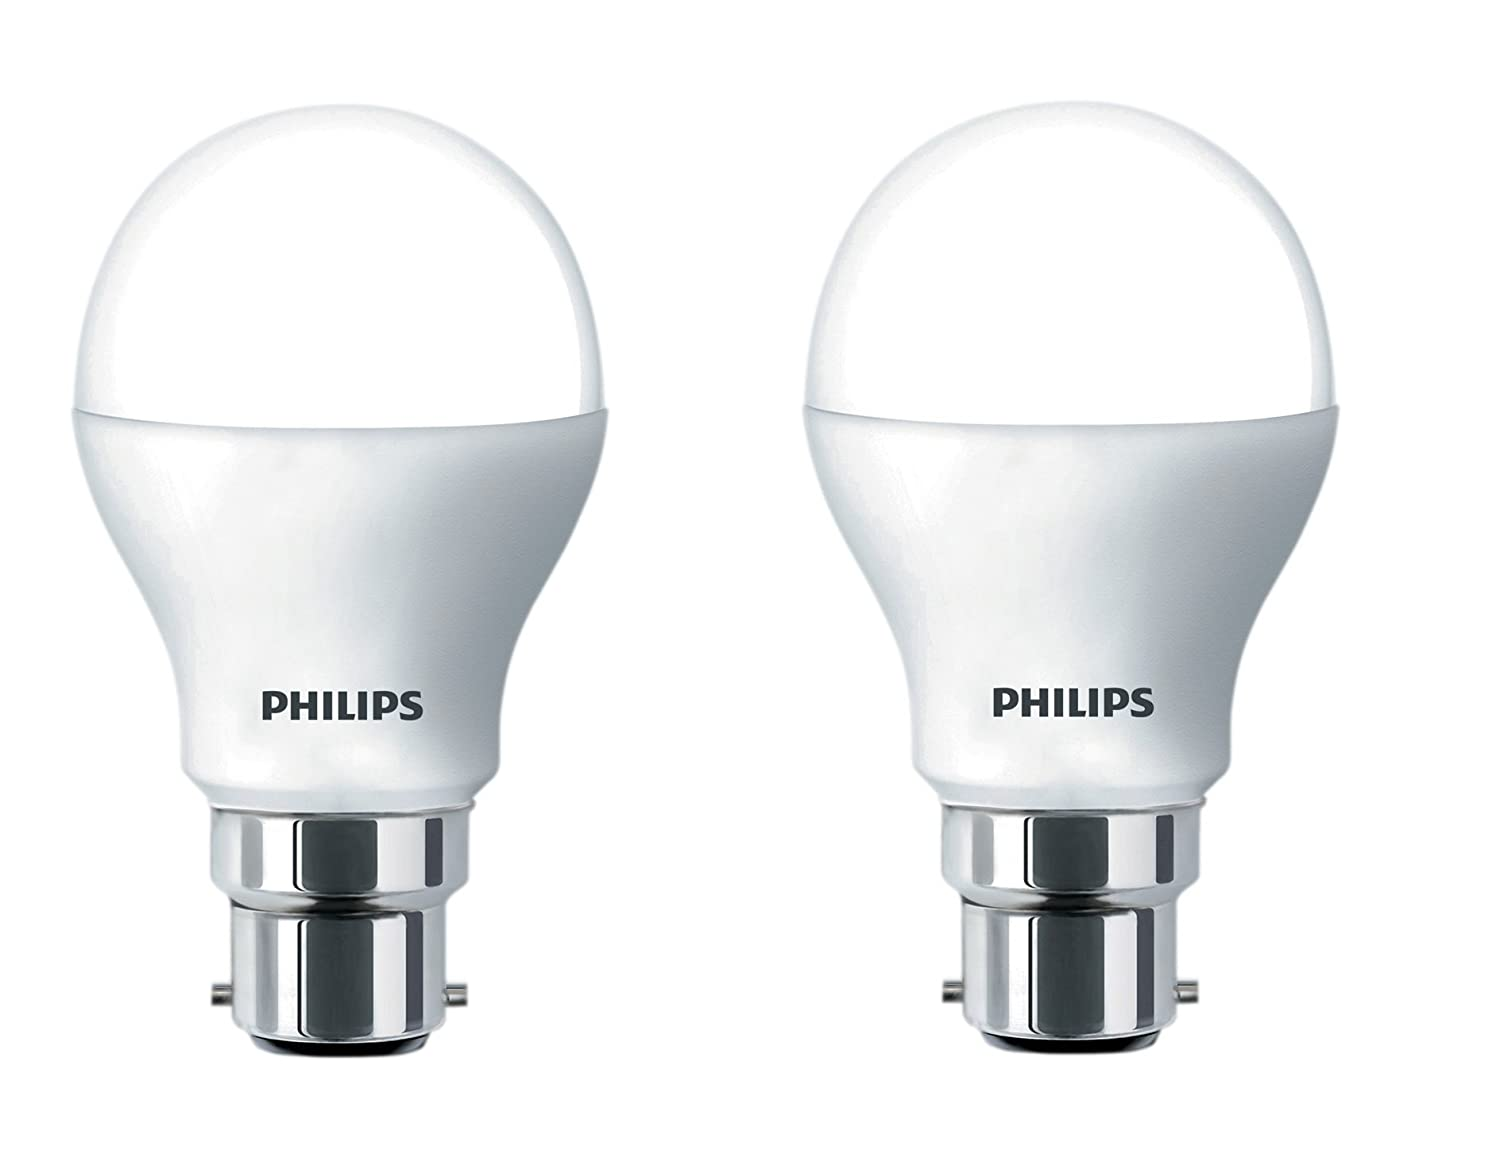 Interesting Buy Philips Stellar Bright B Watt Led Bulb Cool Day Light And Pack Of Online At Low